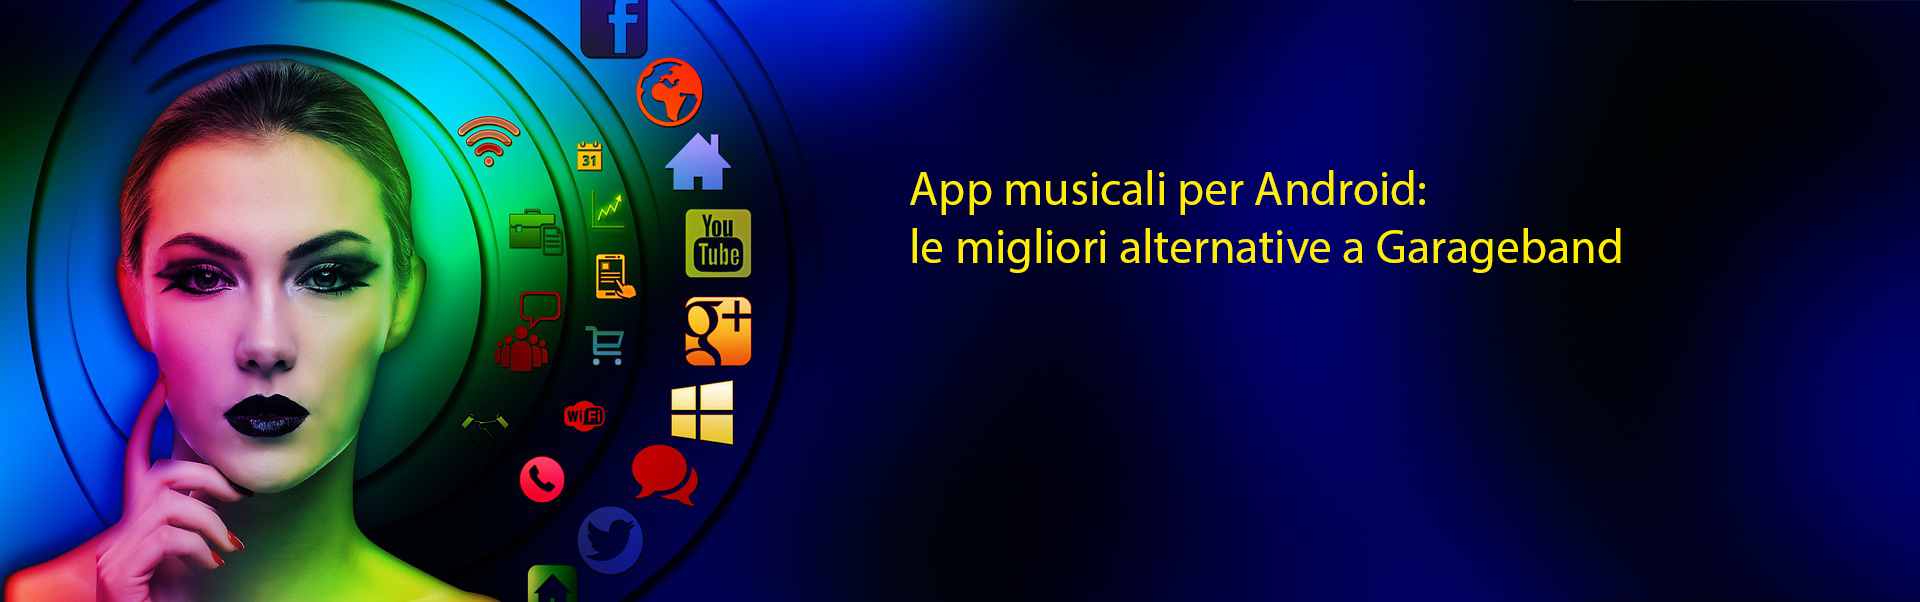 App Musicali per Android